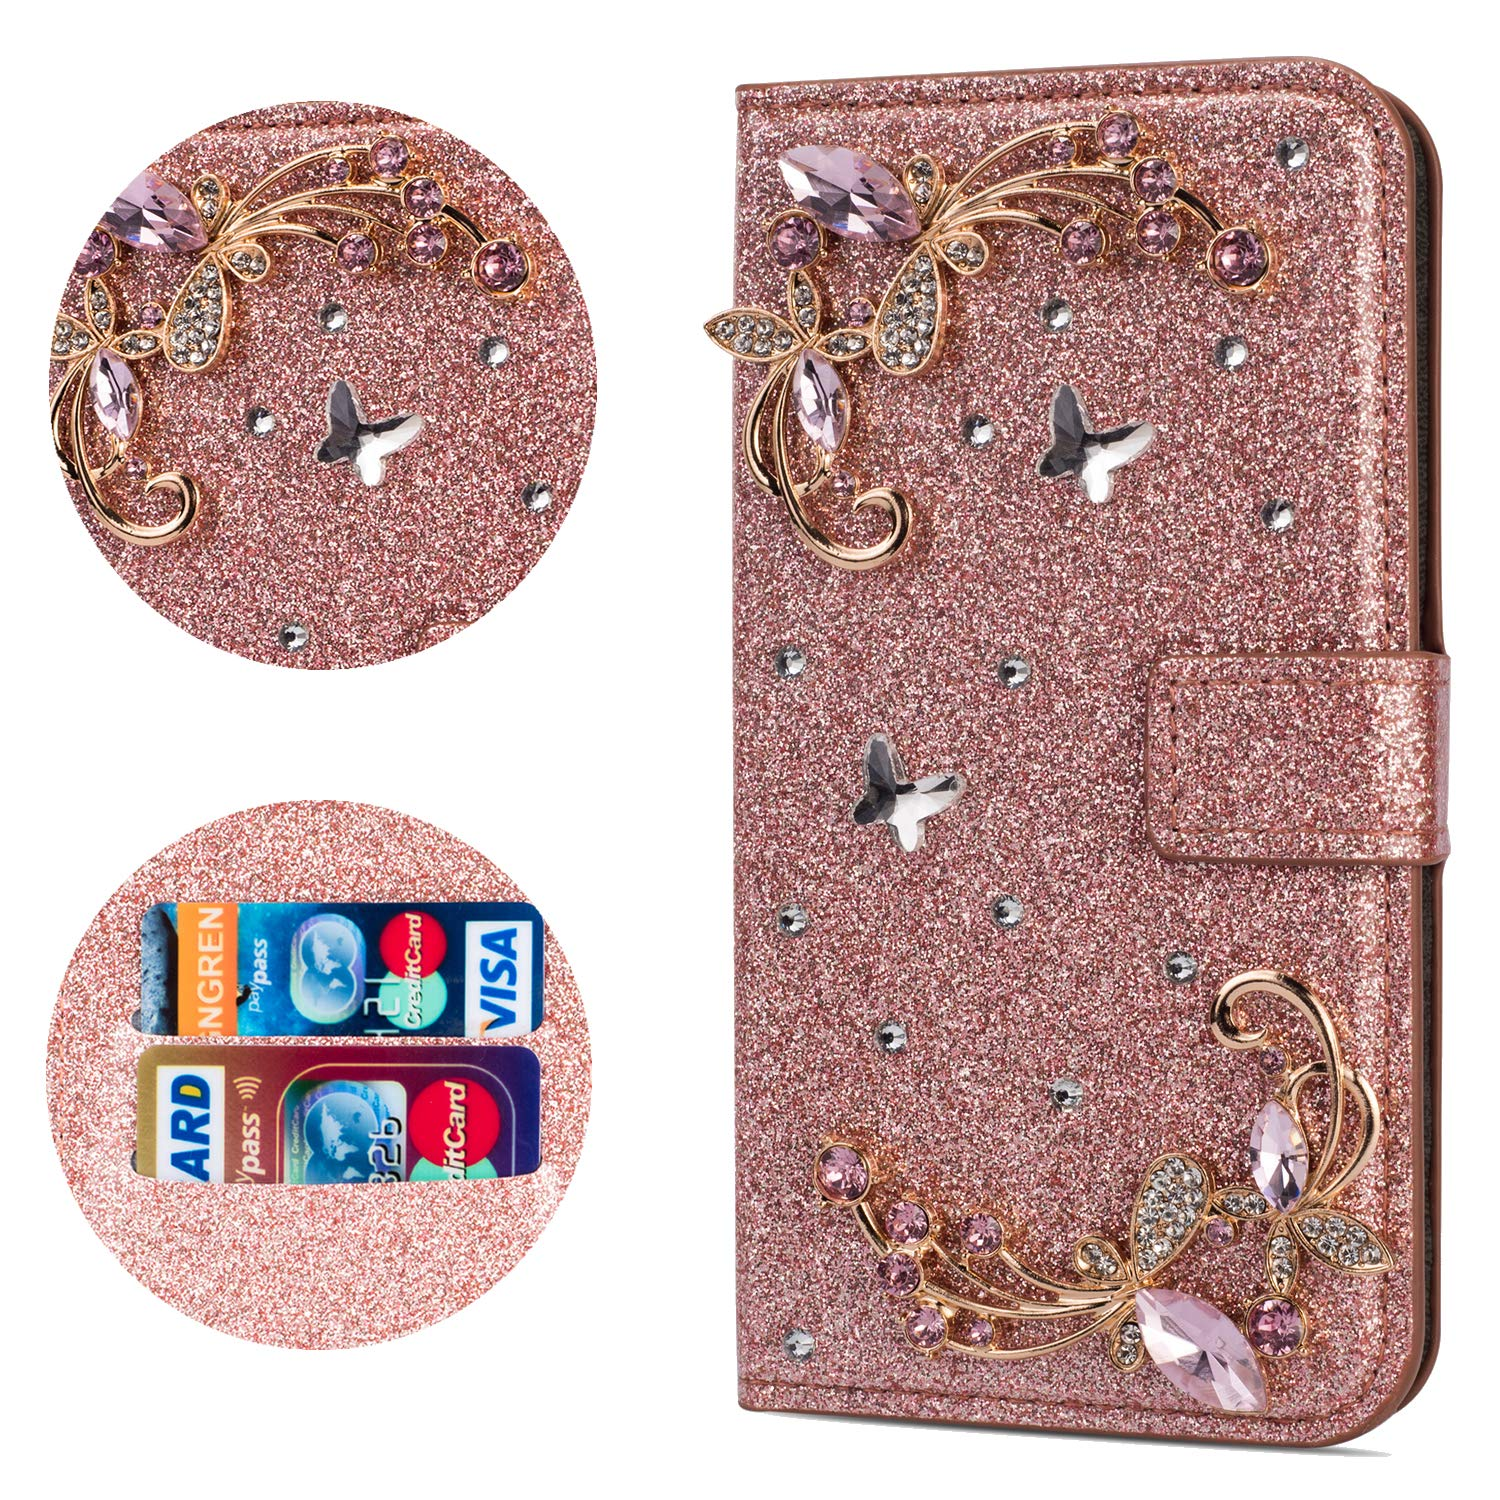 Stysen Flip Case for Galaxy A8 Plus 2018,Leather Cover with 3D Handmade Crystal Diamonds Butterfly Glitter Floral Wallet Magnetic Clasp for Samsung Galaxy A8 Plus 2018 by Stysen